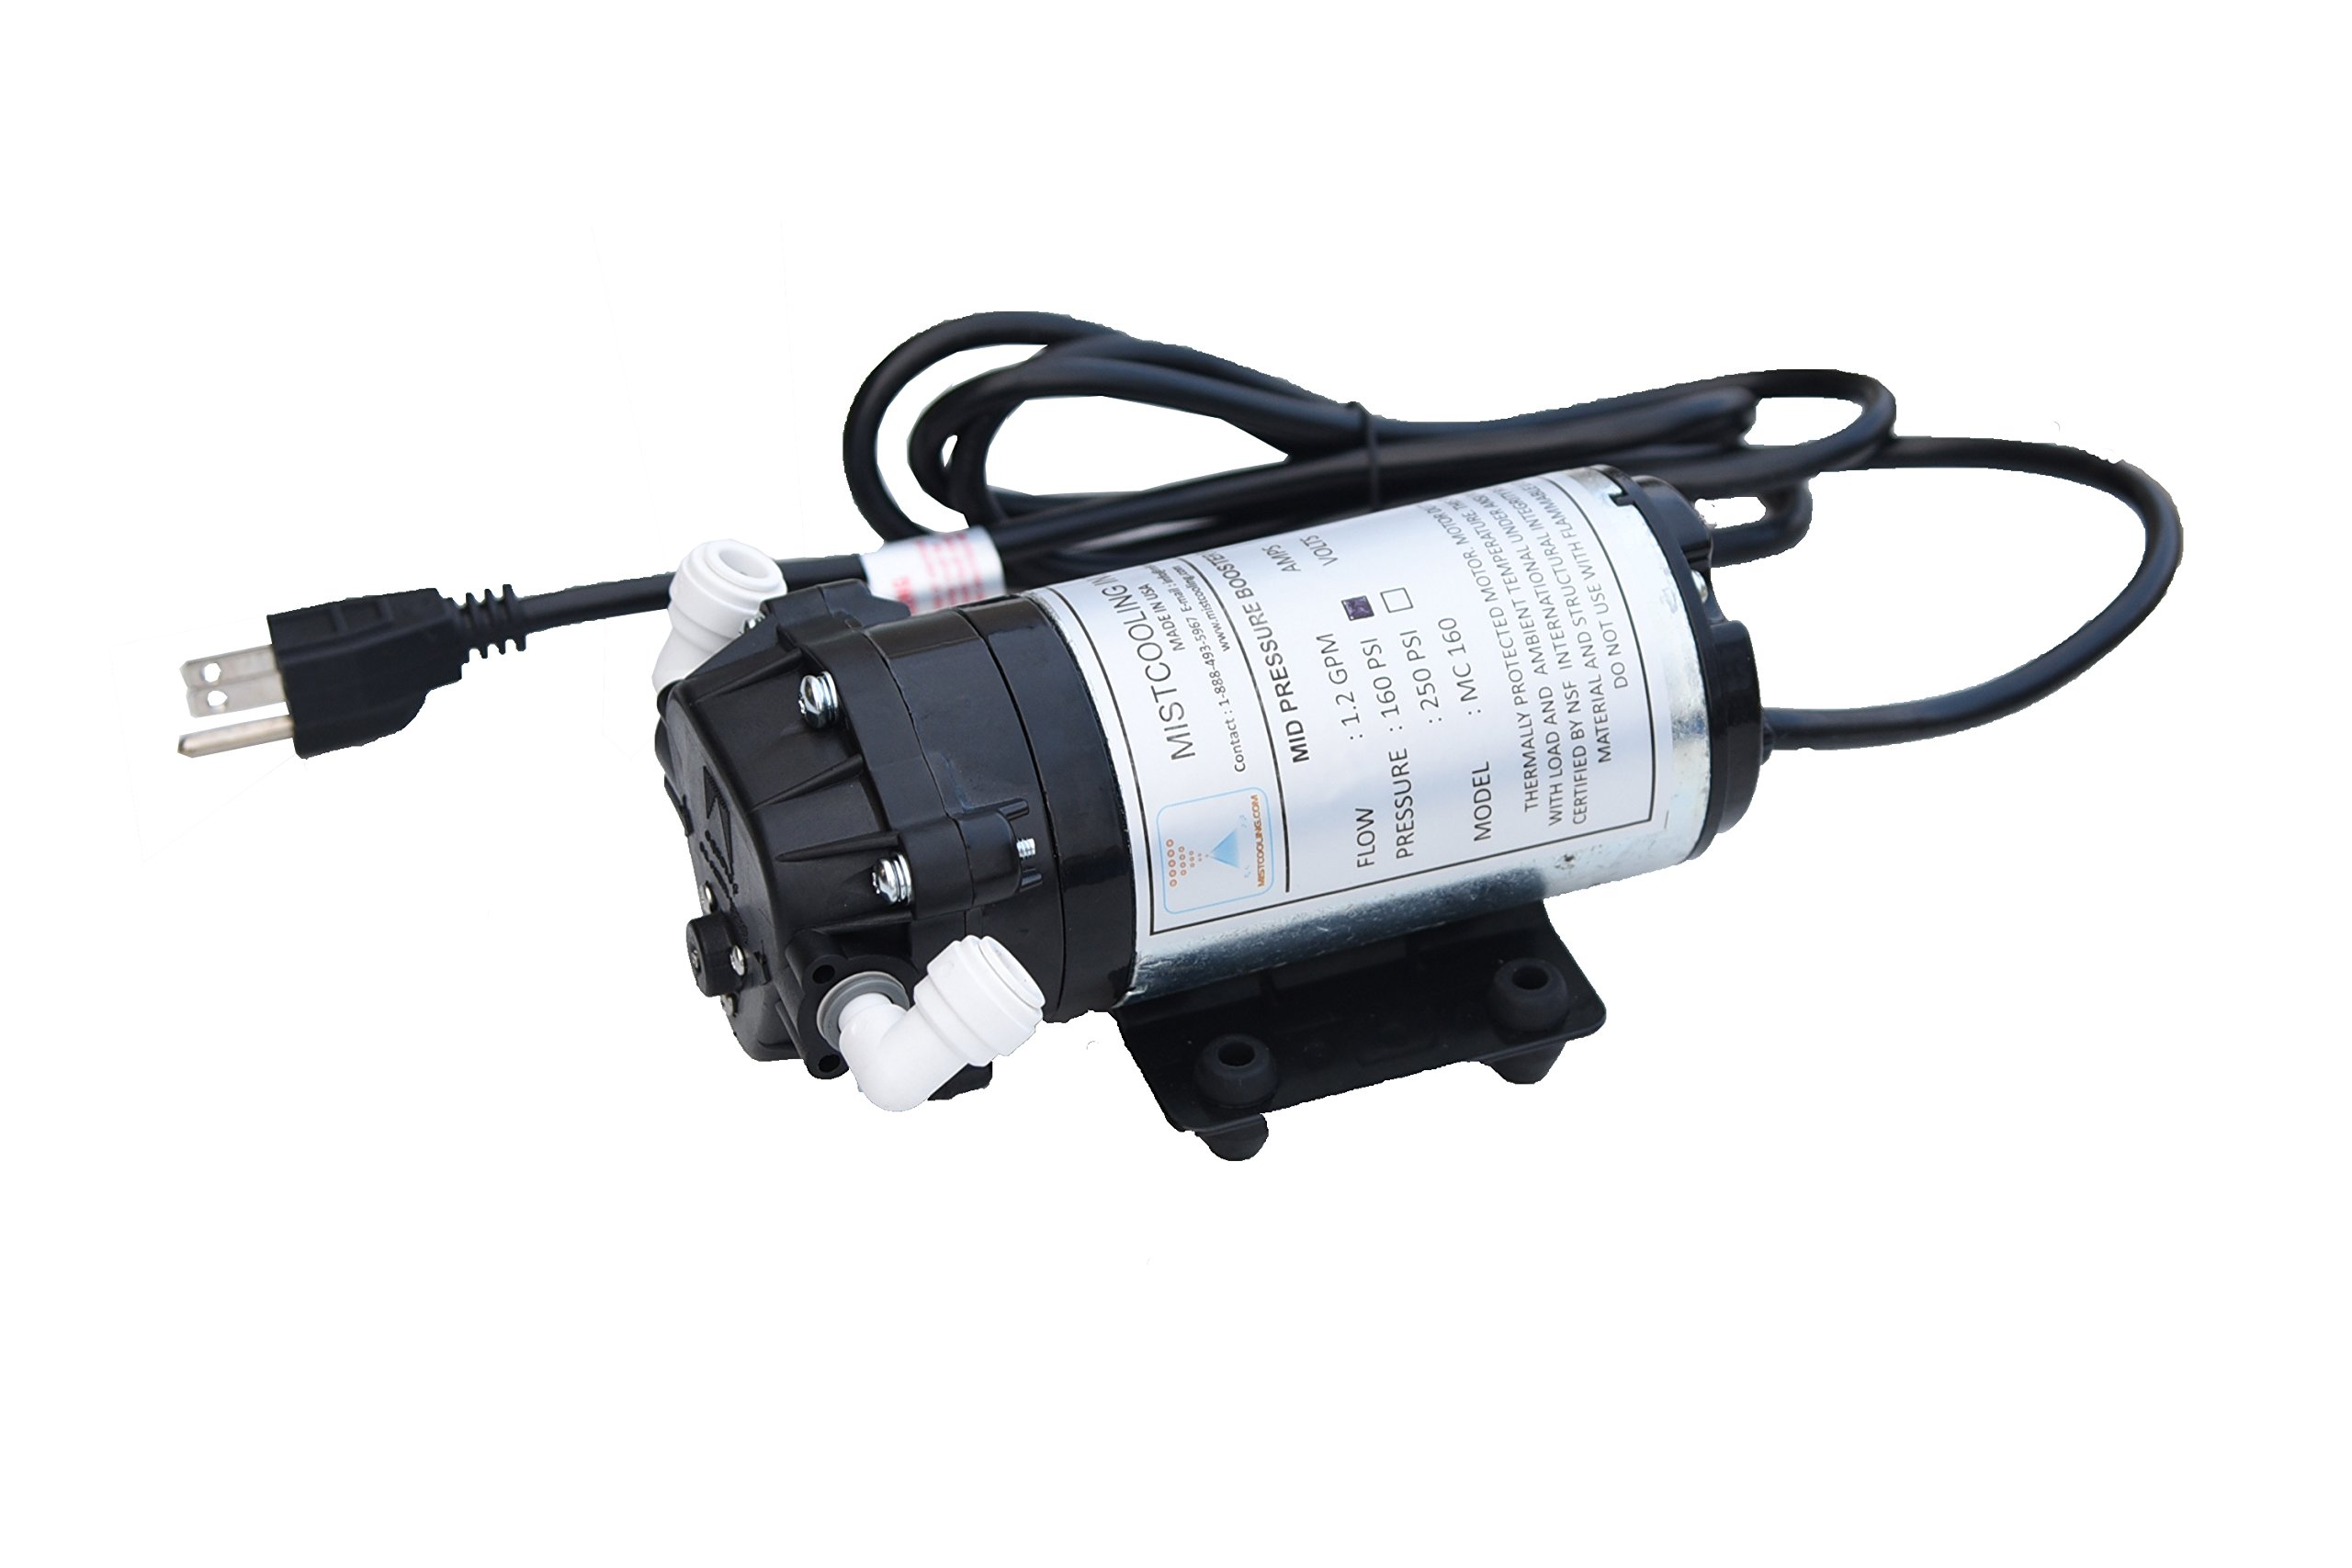 160 PSI Booster Pump | Mid Pressure Misting Pump | Can be used for Fan Misting System and Line based Misting Systems (110V AC) by Mistcooling (Image #1)